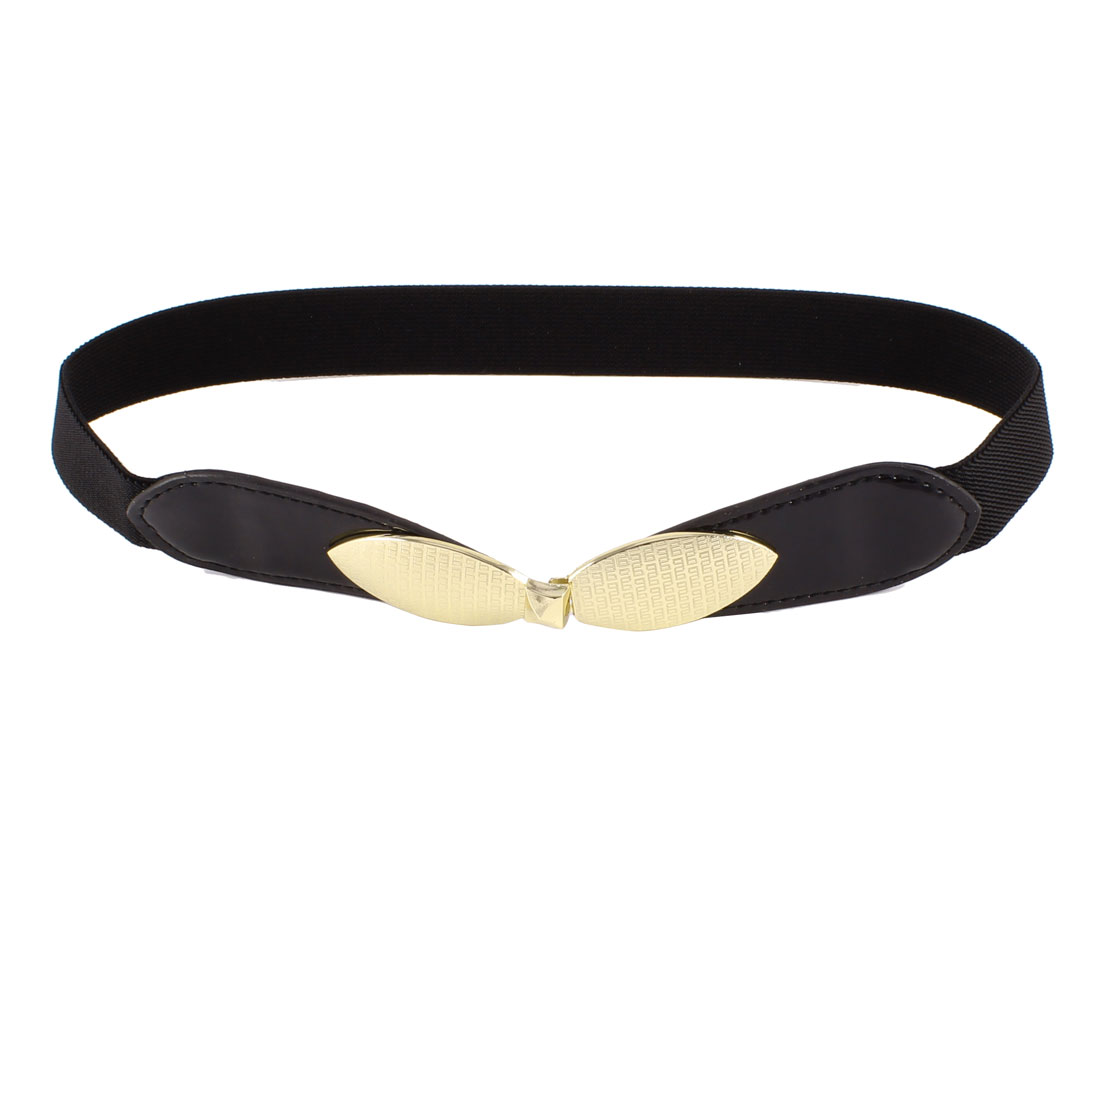 Woman Bowtie Interlock Buckle Faux Leather Stretch Skinny Waist Belt Black